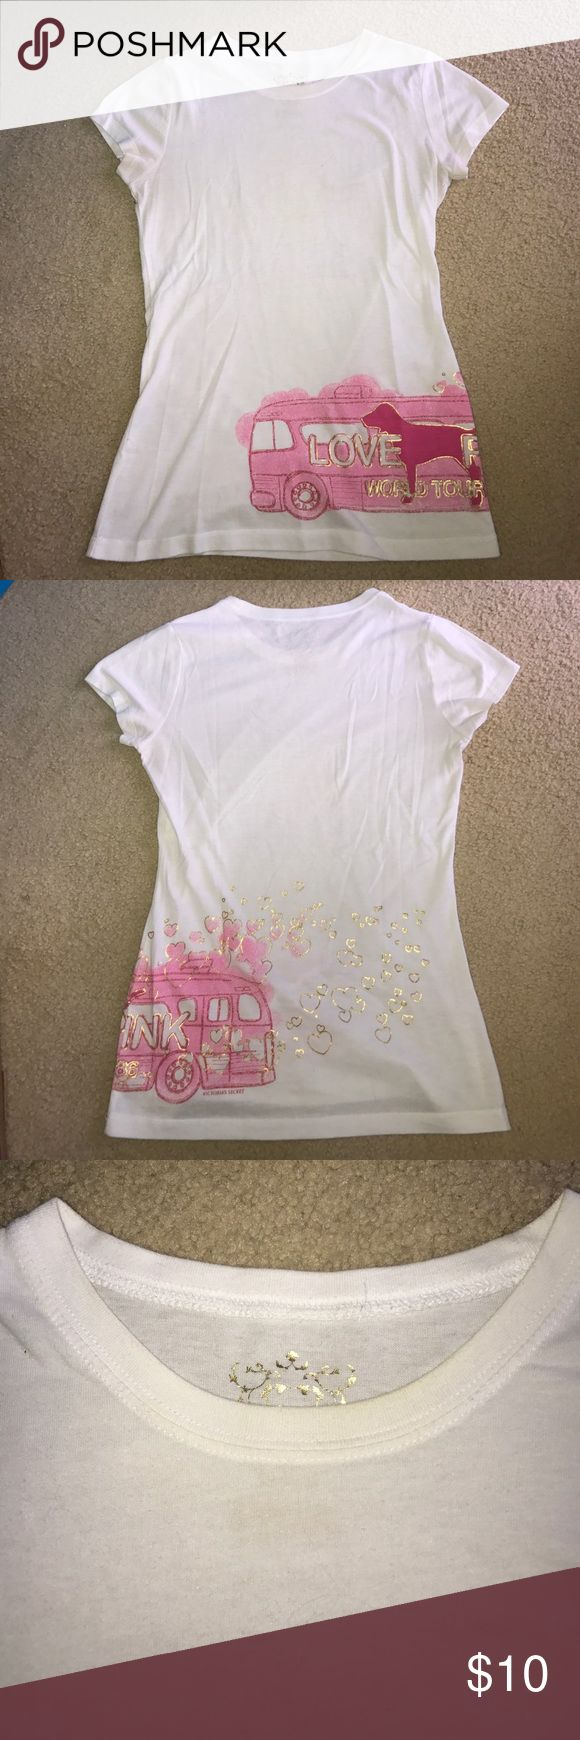 Flash SalePINK World Tour 86 TeePRICE FIRM For sale is a size medium tee by VS PINK!! The bottom features a pink bus and iconic PINK dog with gold foil hearts and the phrase Love PINK World Tour 86. It's a pre-loved shirt and there are natural stains from due to it being a white shirt. They're around the collar and under the arms as shown in the photos. I'm washing it again before selling to get the makeup off the collar from trying it on. Price firm due to limited edition item! PINK…